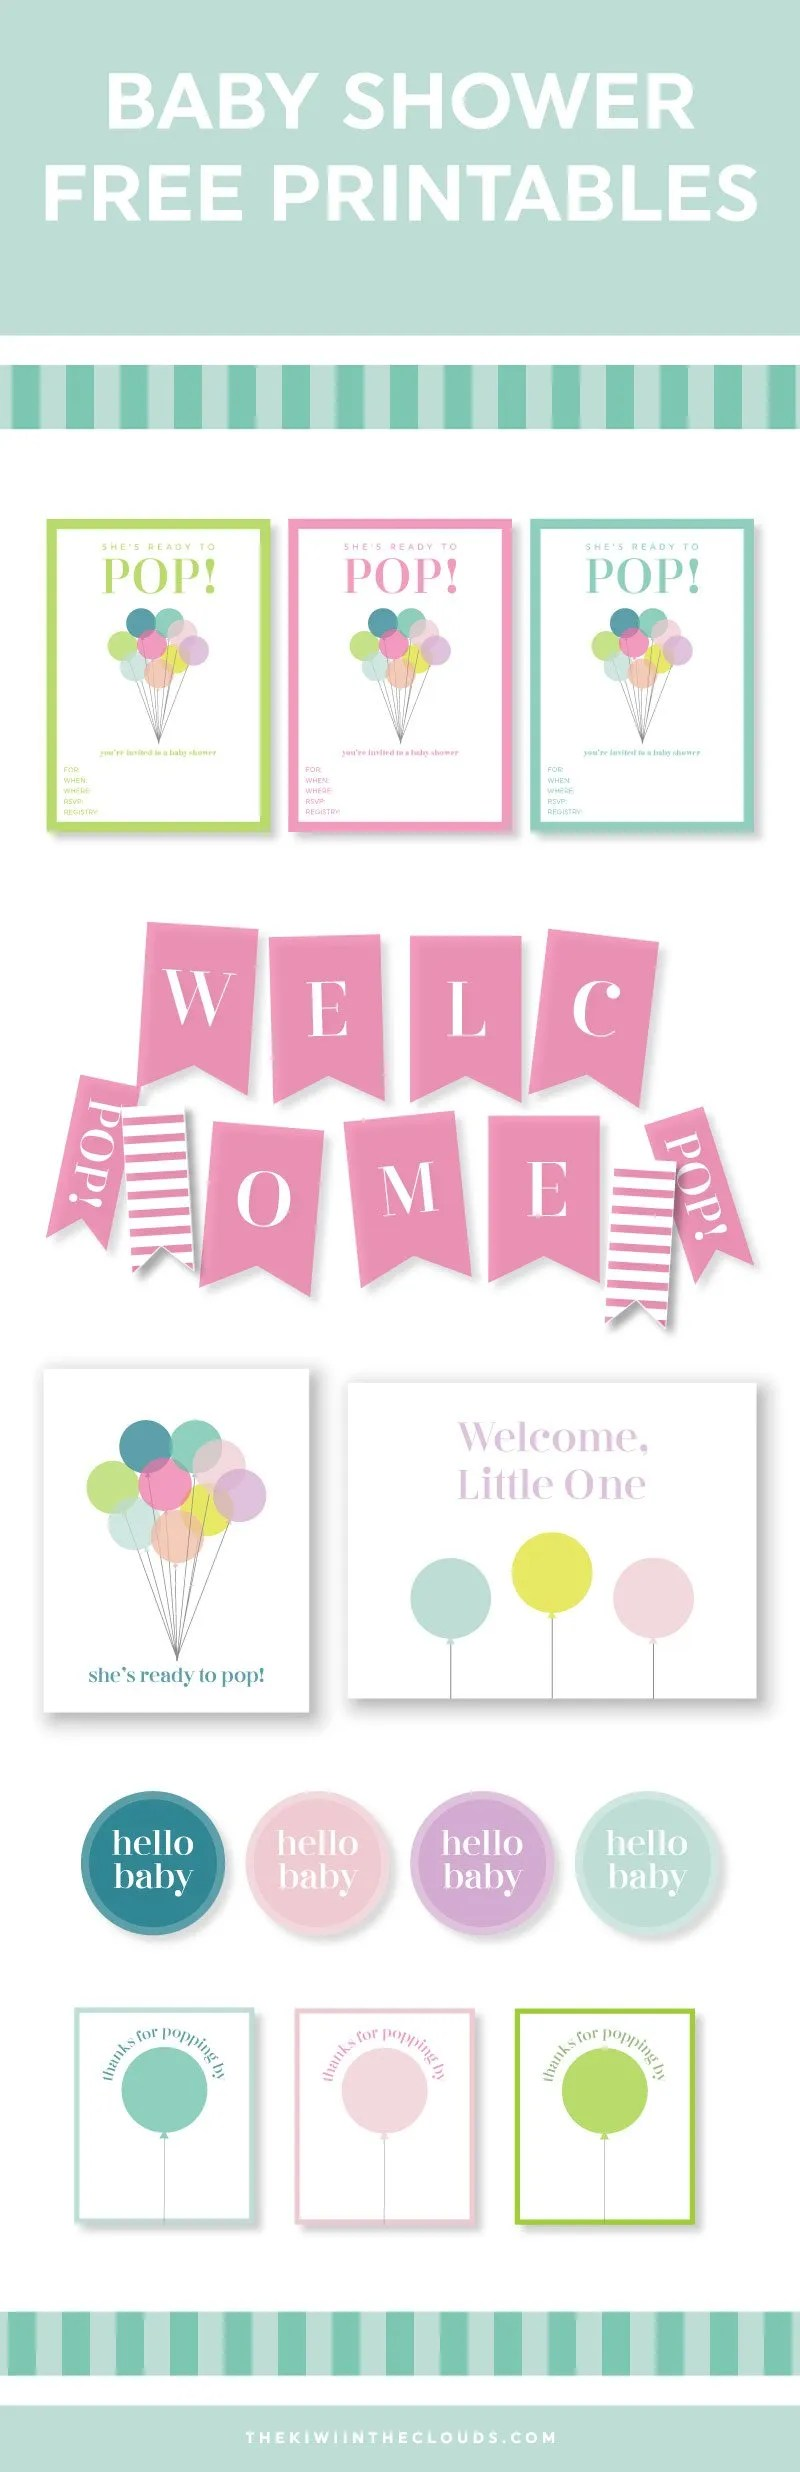 picture relating to Baby Shower Templates Free Printable referred to as 65 Cost-free Youngster Shower Printables for an Cute Celebration